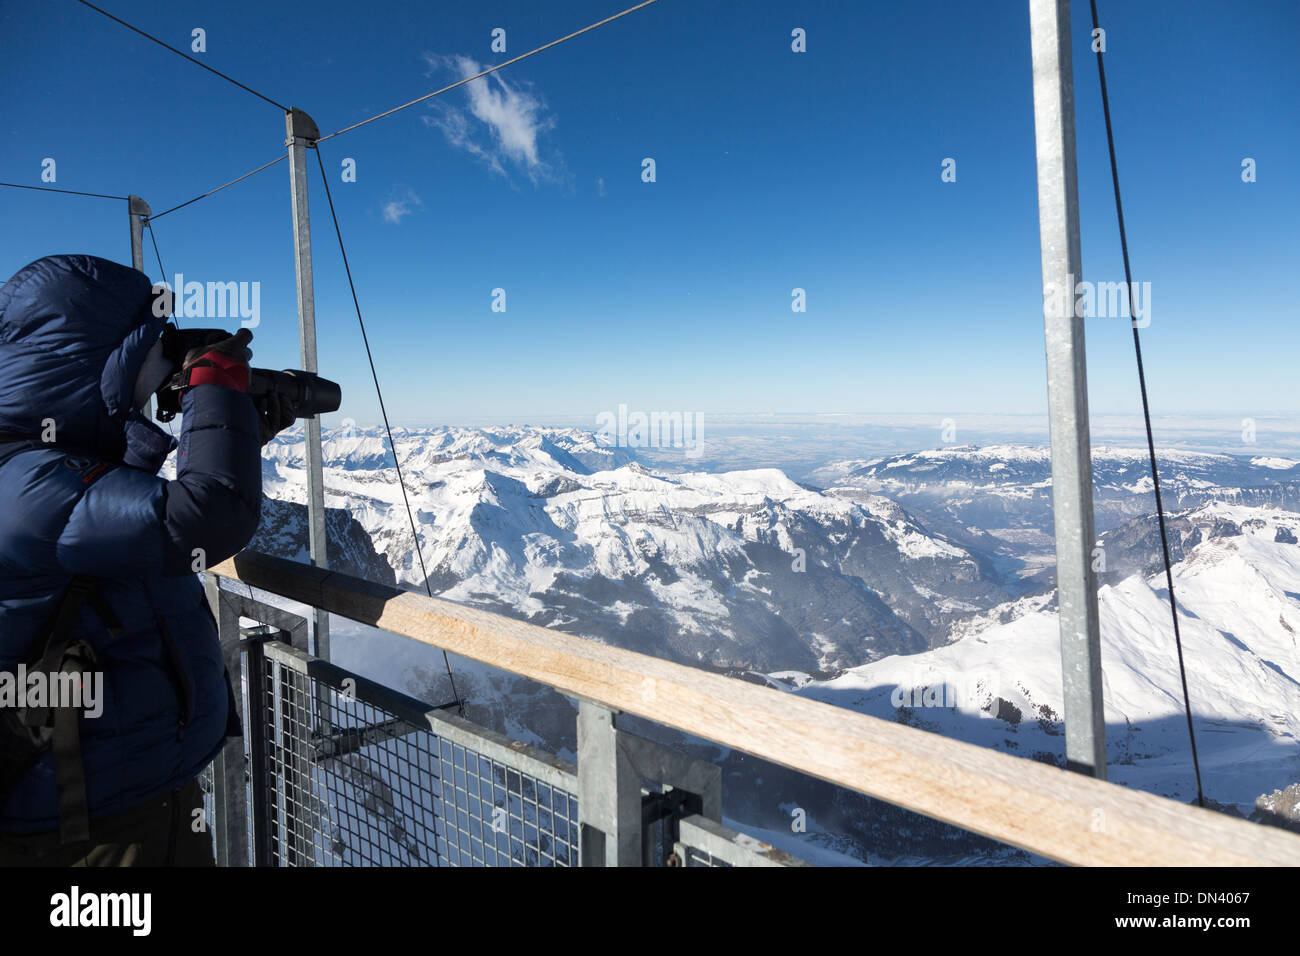 photographing from the deck of the Sphinx Observatory, Jungfraujoch, Switzerland - Stock Image